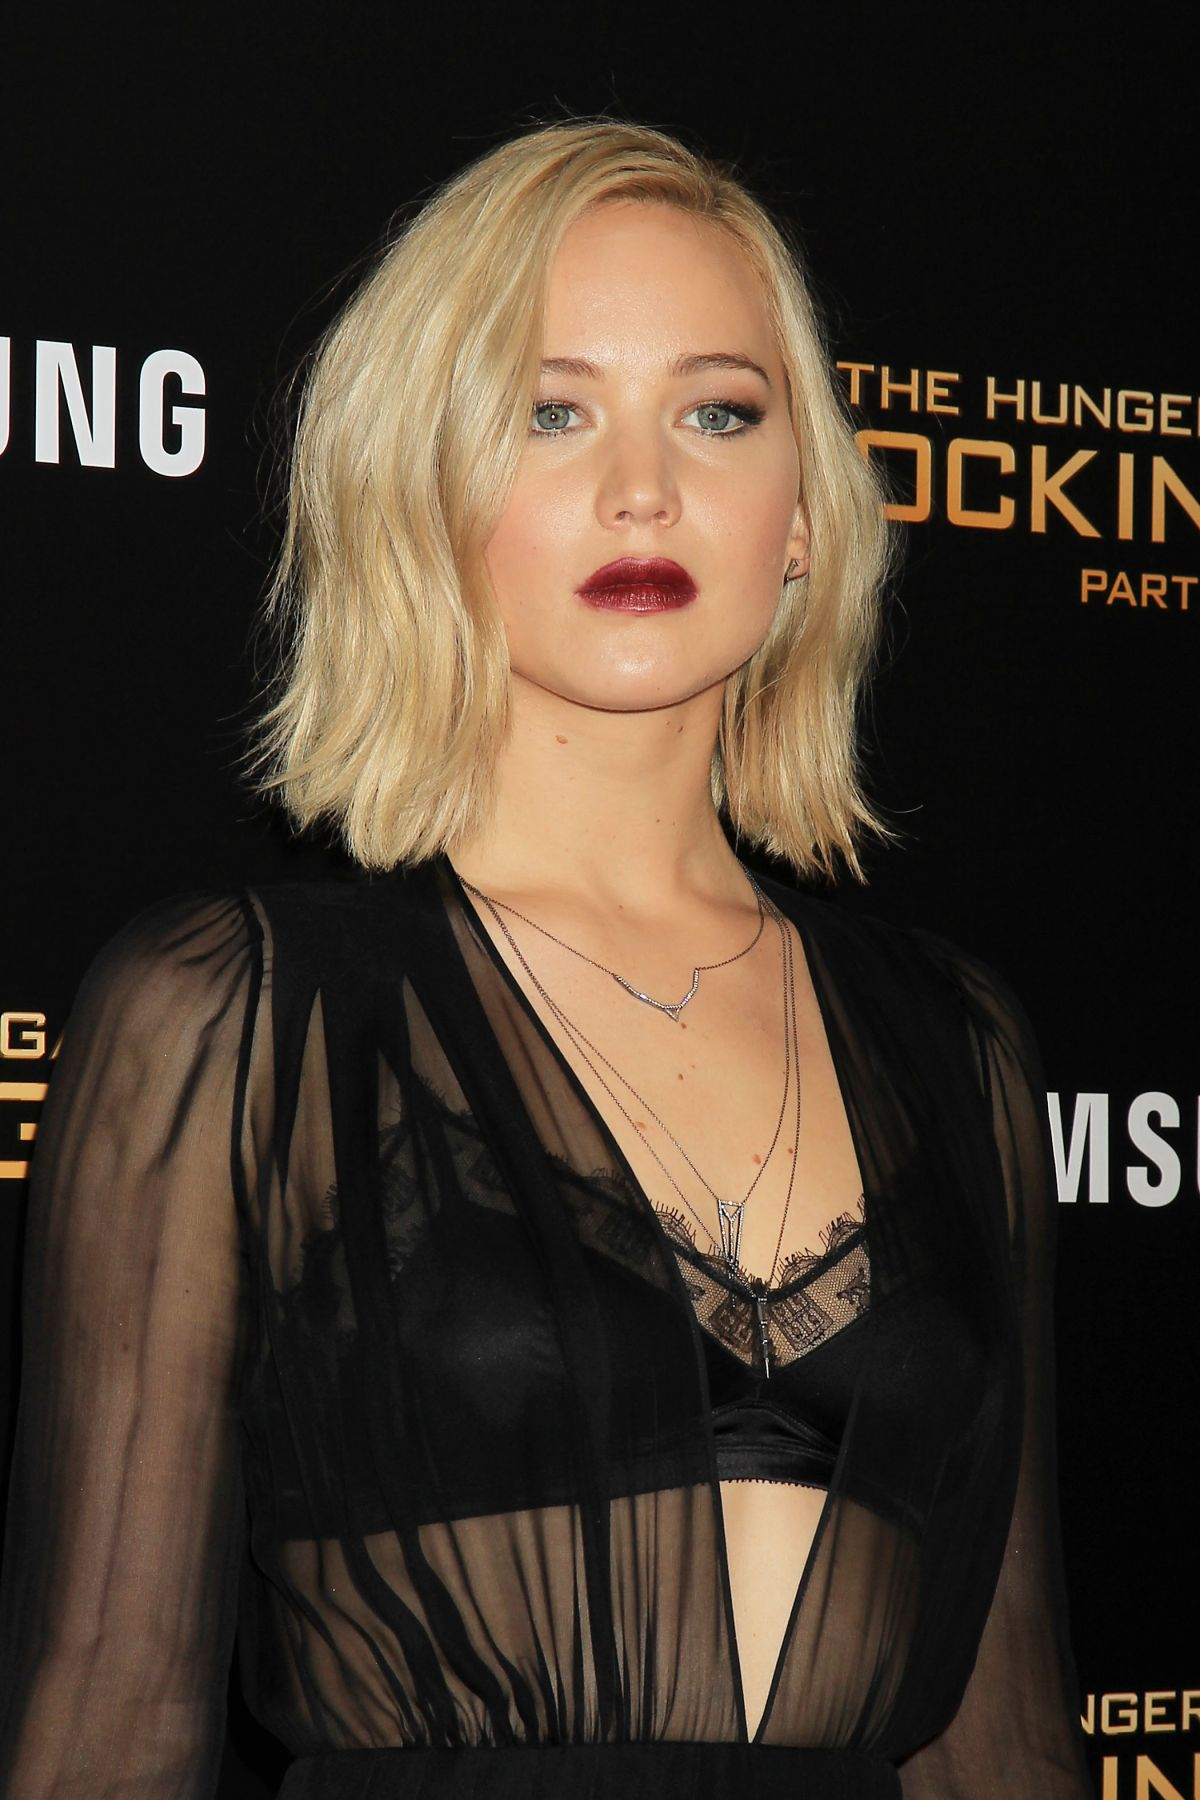 """who is jennifer from hunger games dating Jennifer lawrence quietly dating new york art gallerist """"the hunger games"""" star is dating a dashing new york art gallerist named cooke maroney."""